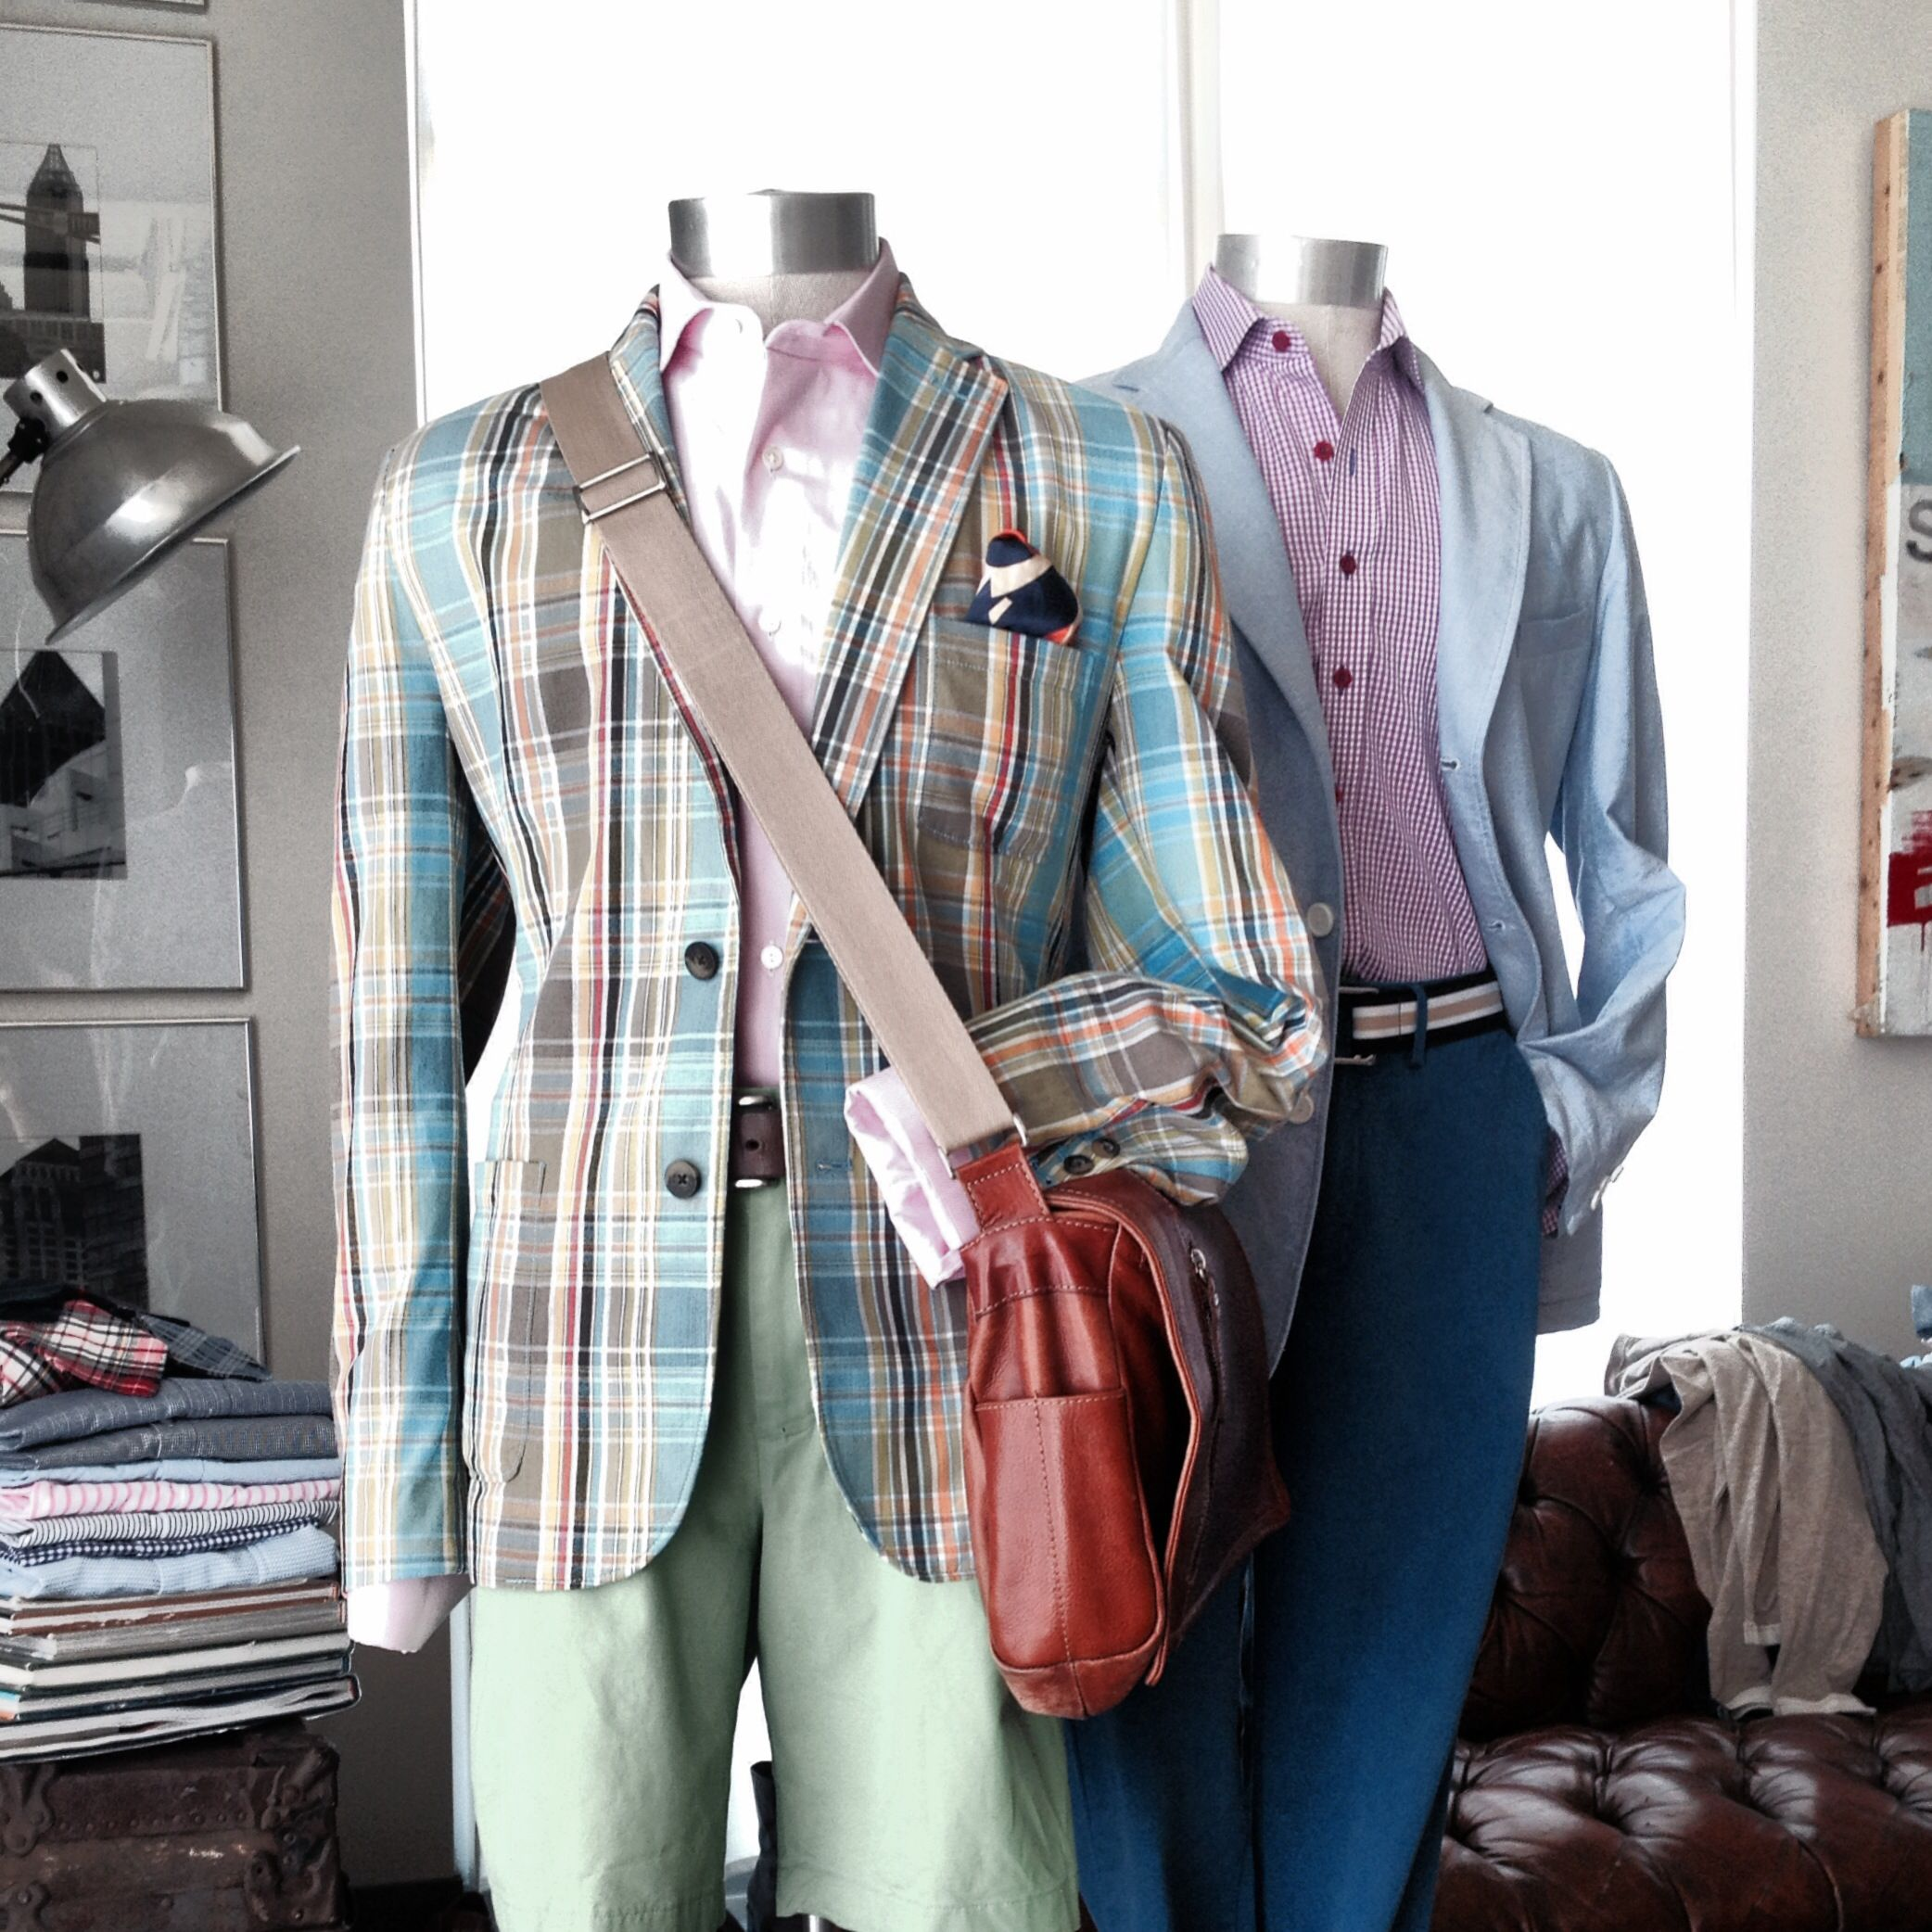 Jack spade and J crew. Lets get this spring strarted right.